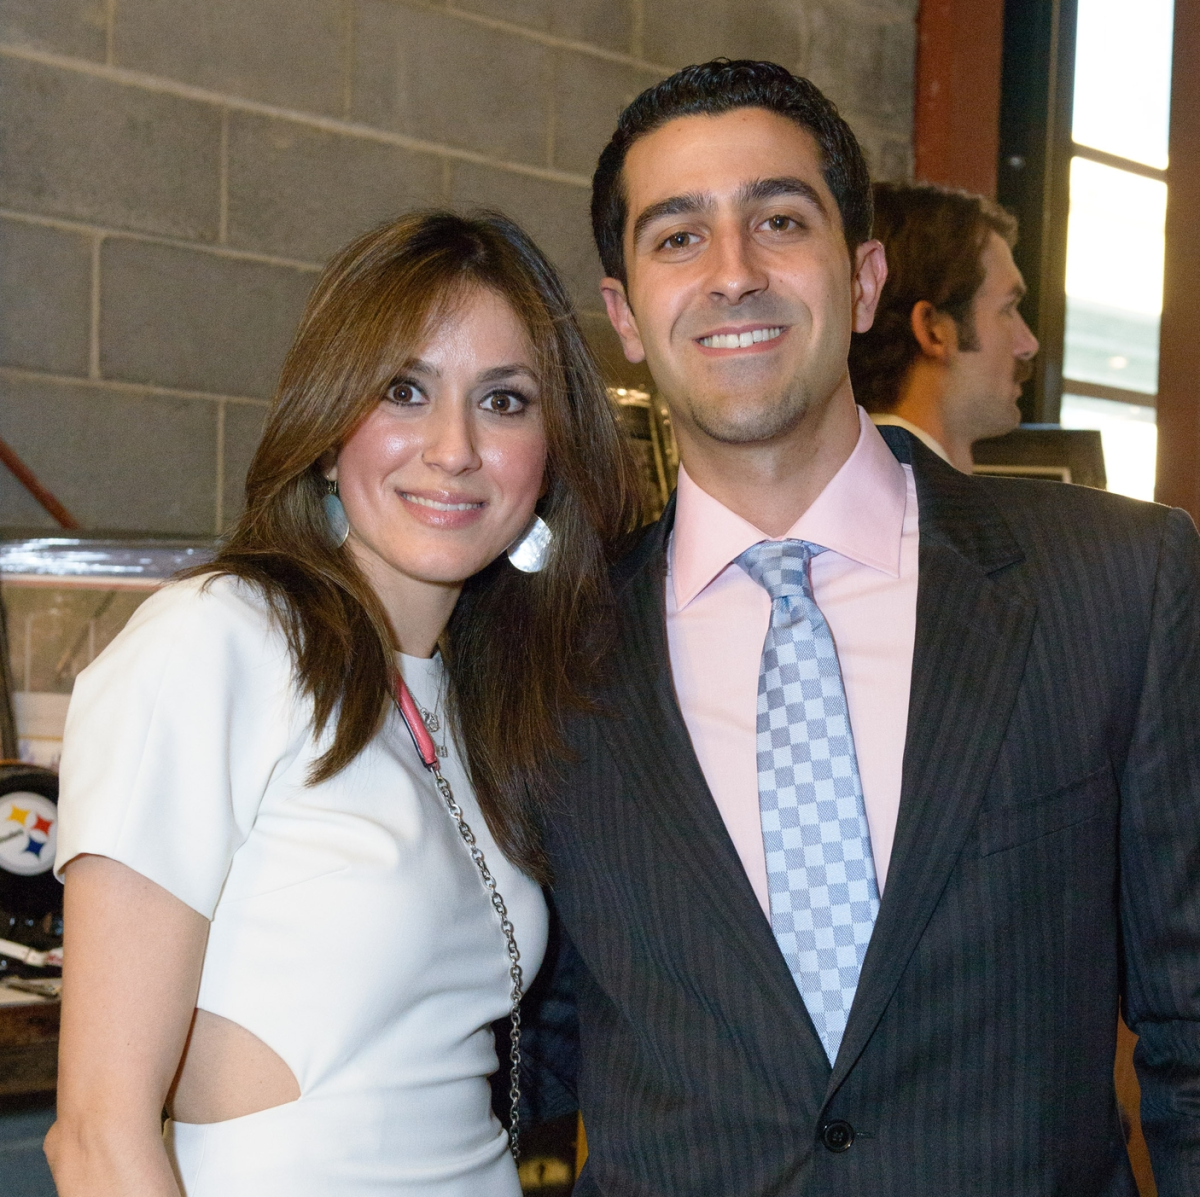 Project 88 gala, 4/16, Heidi Kashani, Andy Saberioon